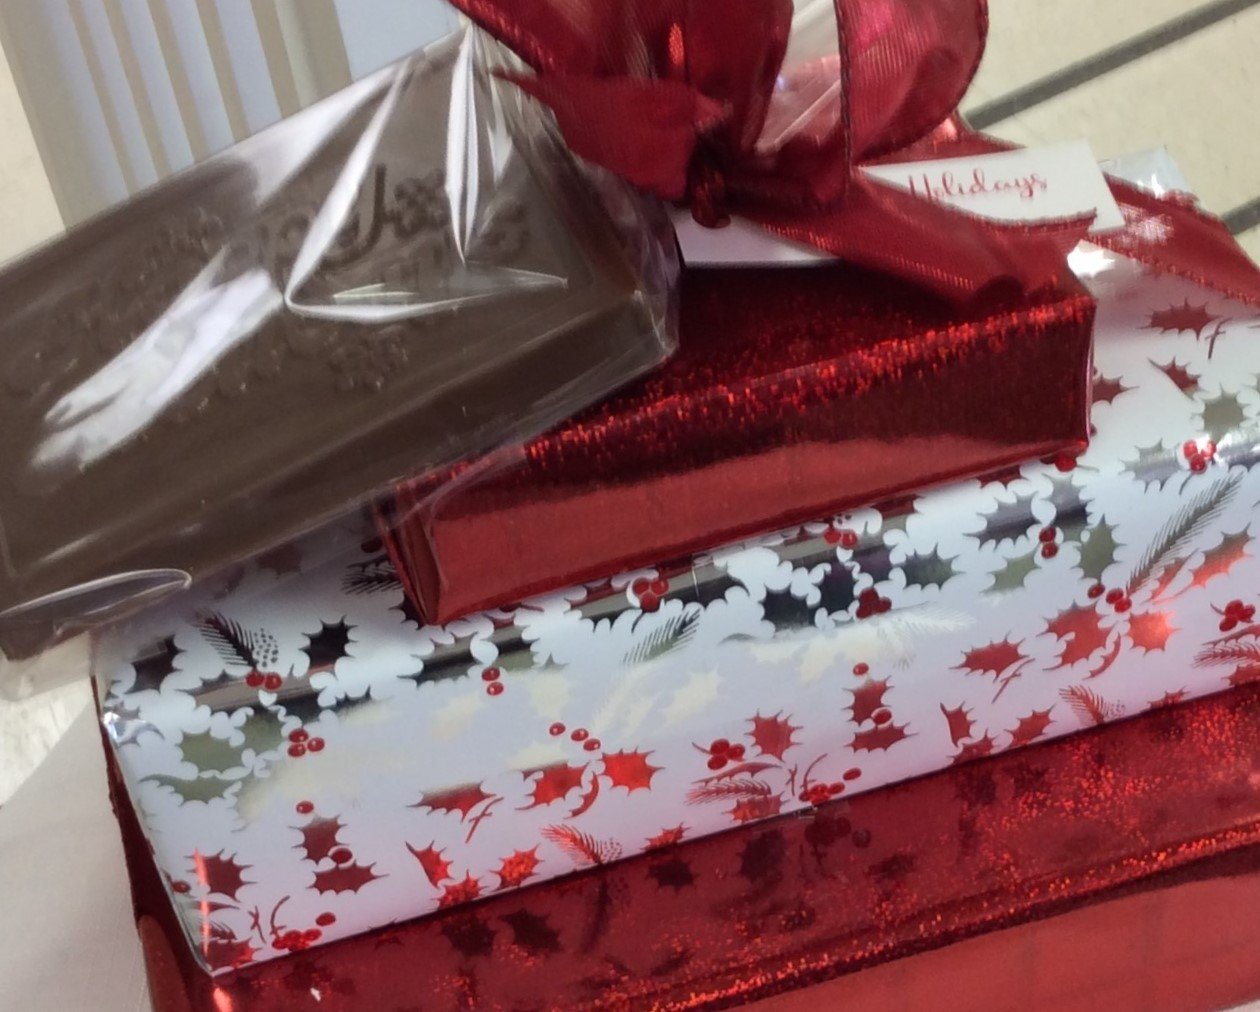 3 Tiered Chocolate Asst. Plus Holiday Greetings Milk Chocolate Bar. Boxed Assortments include 2 Lb. of Asst. Chocolates, 1.25 Lb. of Asst. 3 Ring Pretzels, 1/3 Lb. Mini Pretzels Assorted.